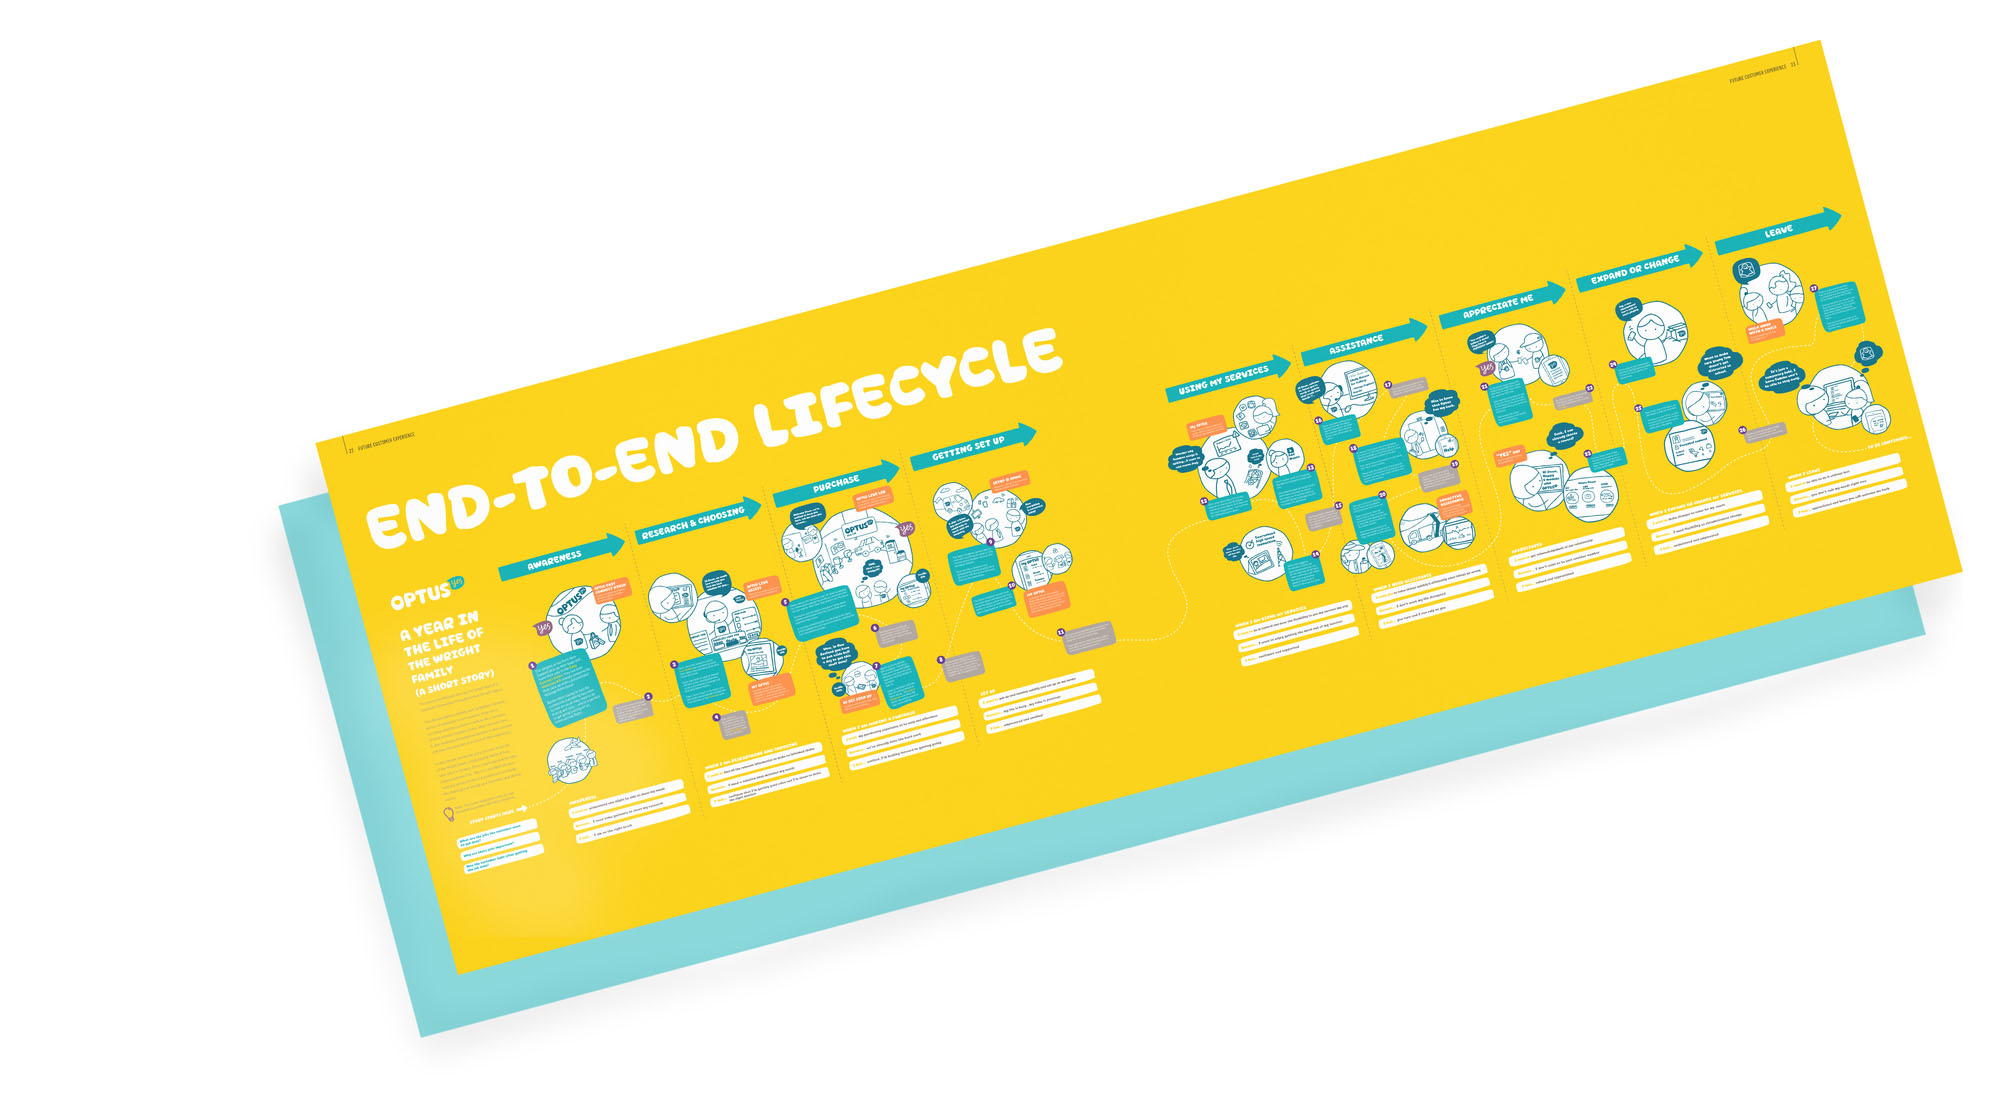 Optus end-to-end lifecycle customer journey map